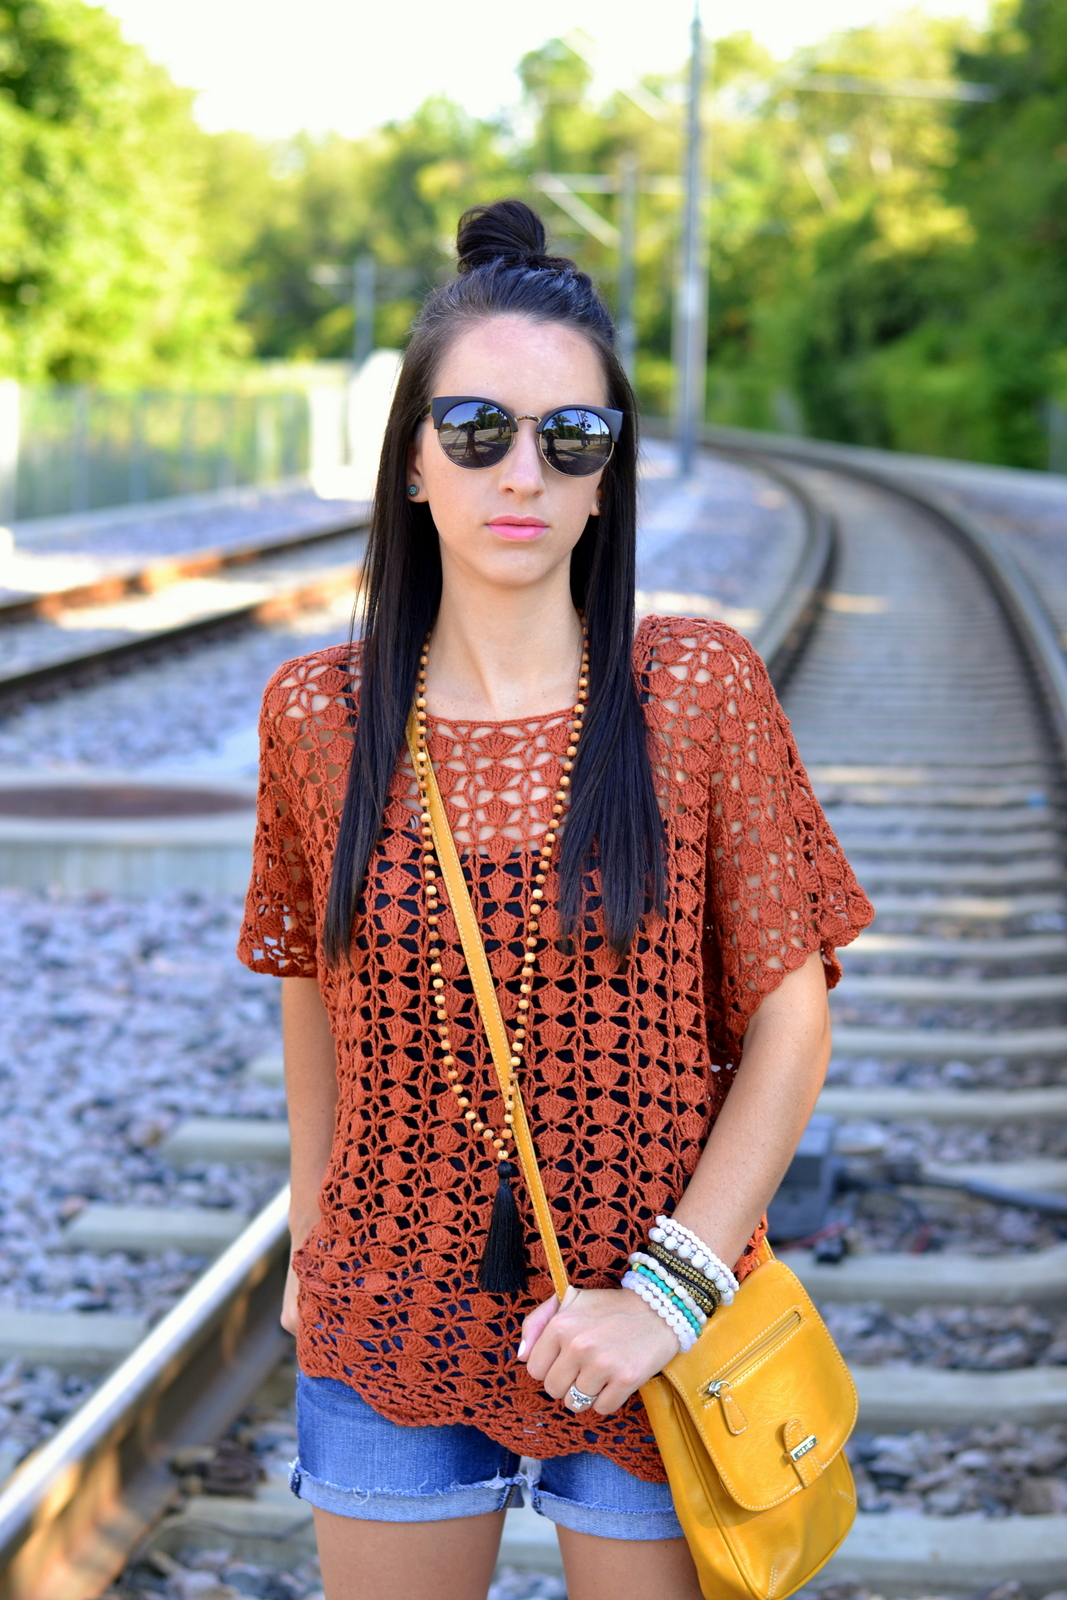 Casual summer look with Cat eyed sunglasses, crochet top and tassel necklace